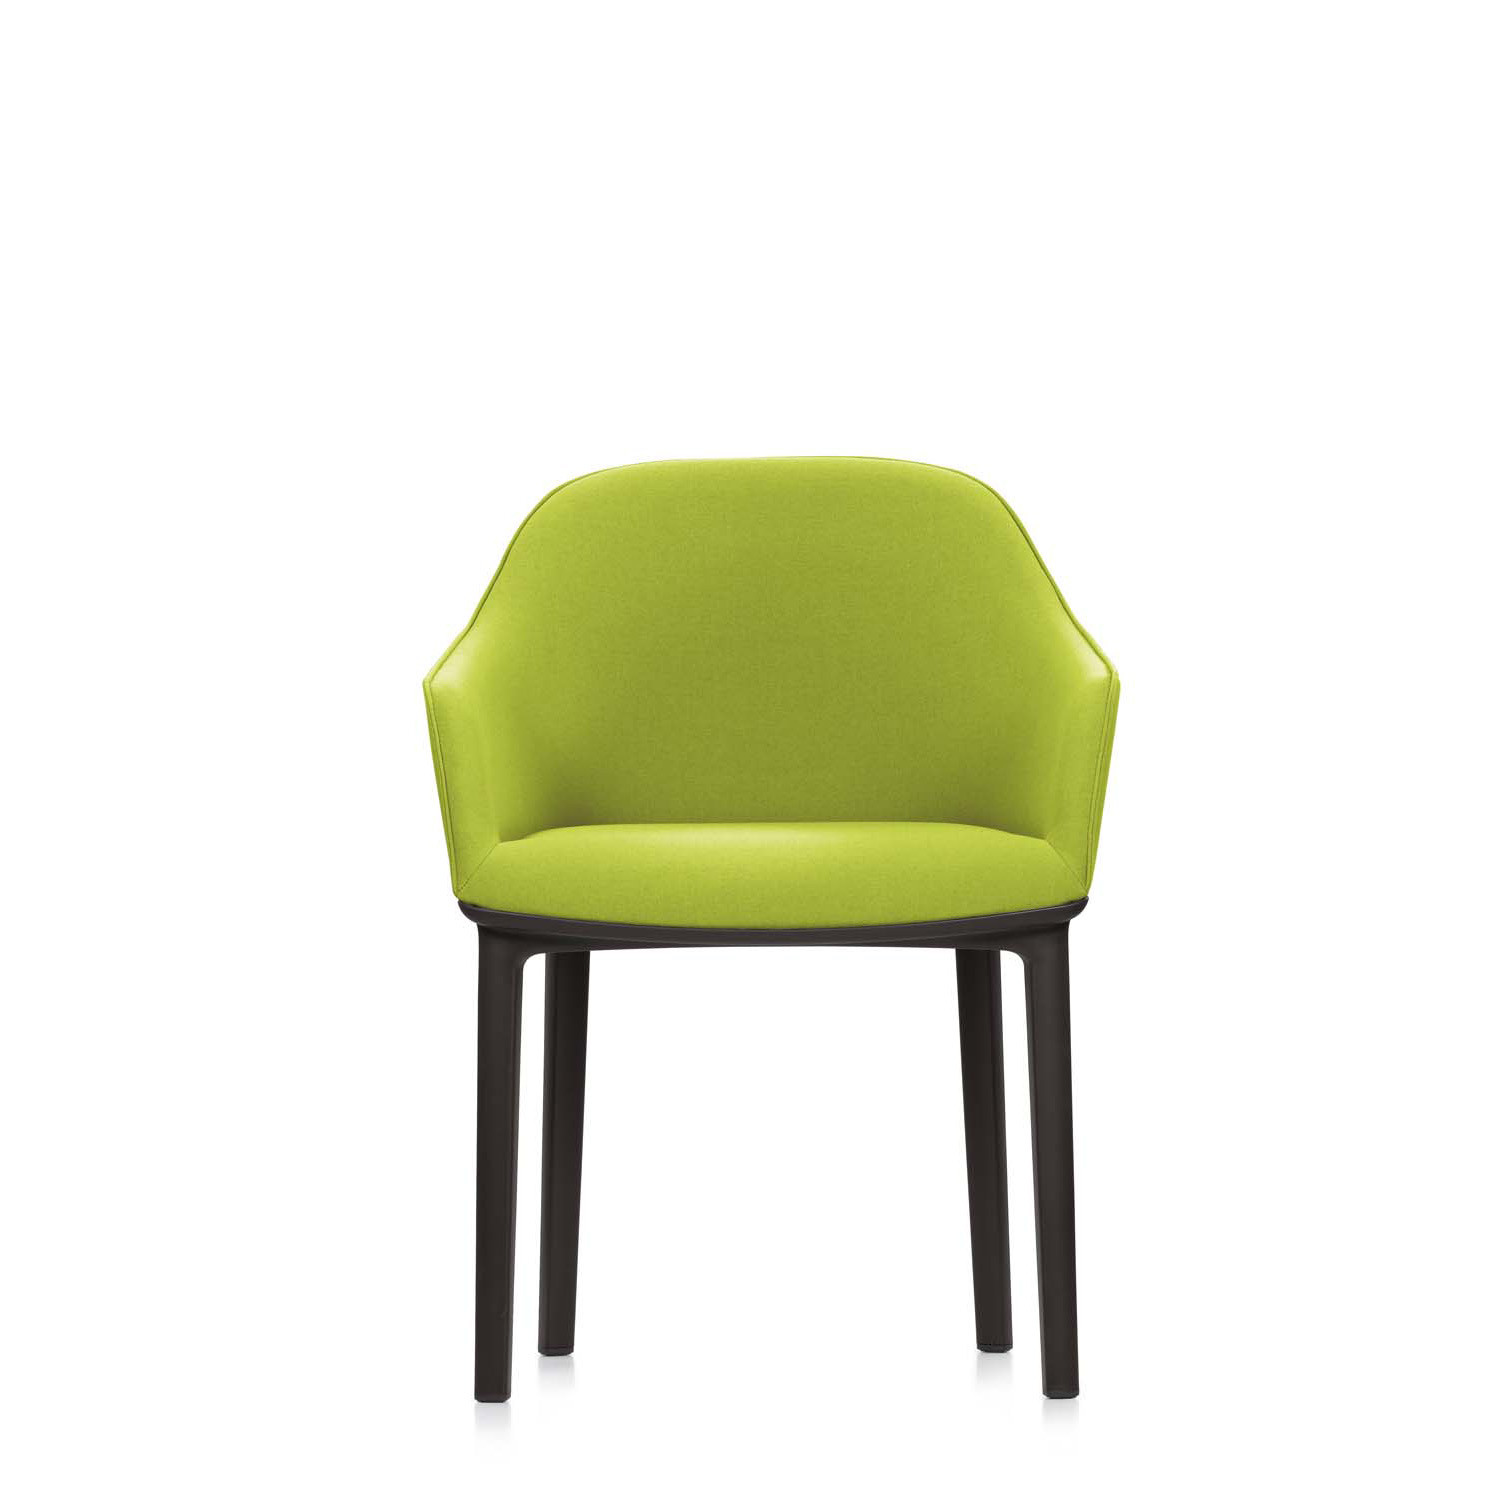 Softshell Armchair with four legs